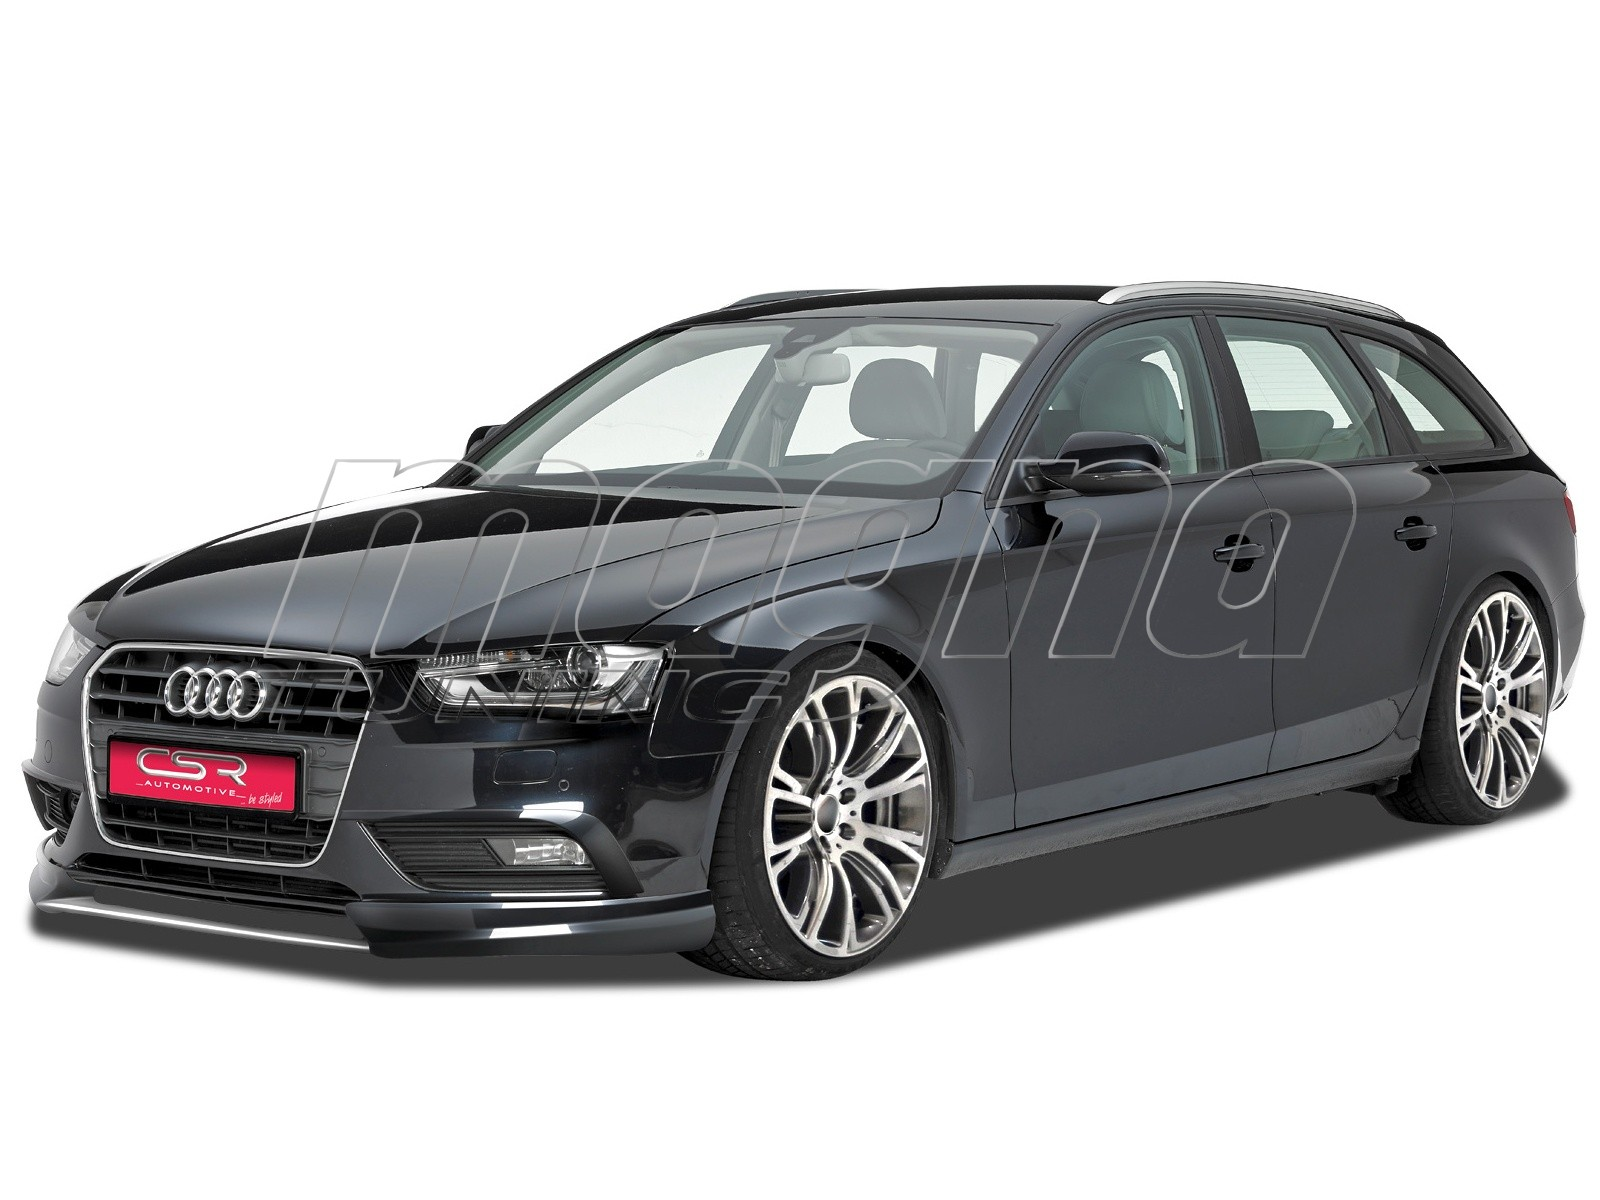 audi a4 b8 8k facelift n2 frontansatz. Black Bedroom Furniture Sets. Home Design Ideas